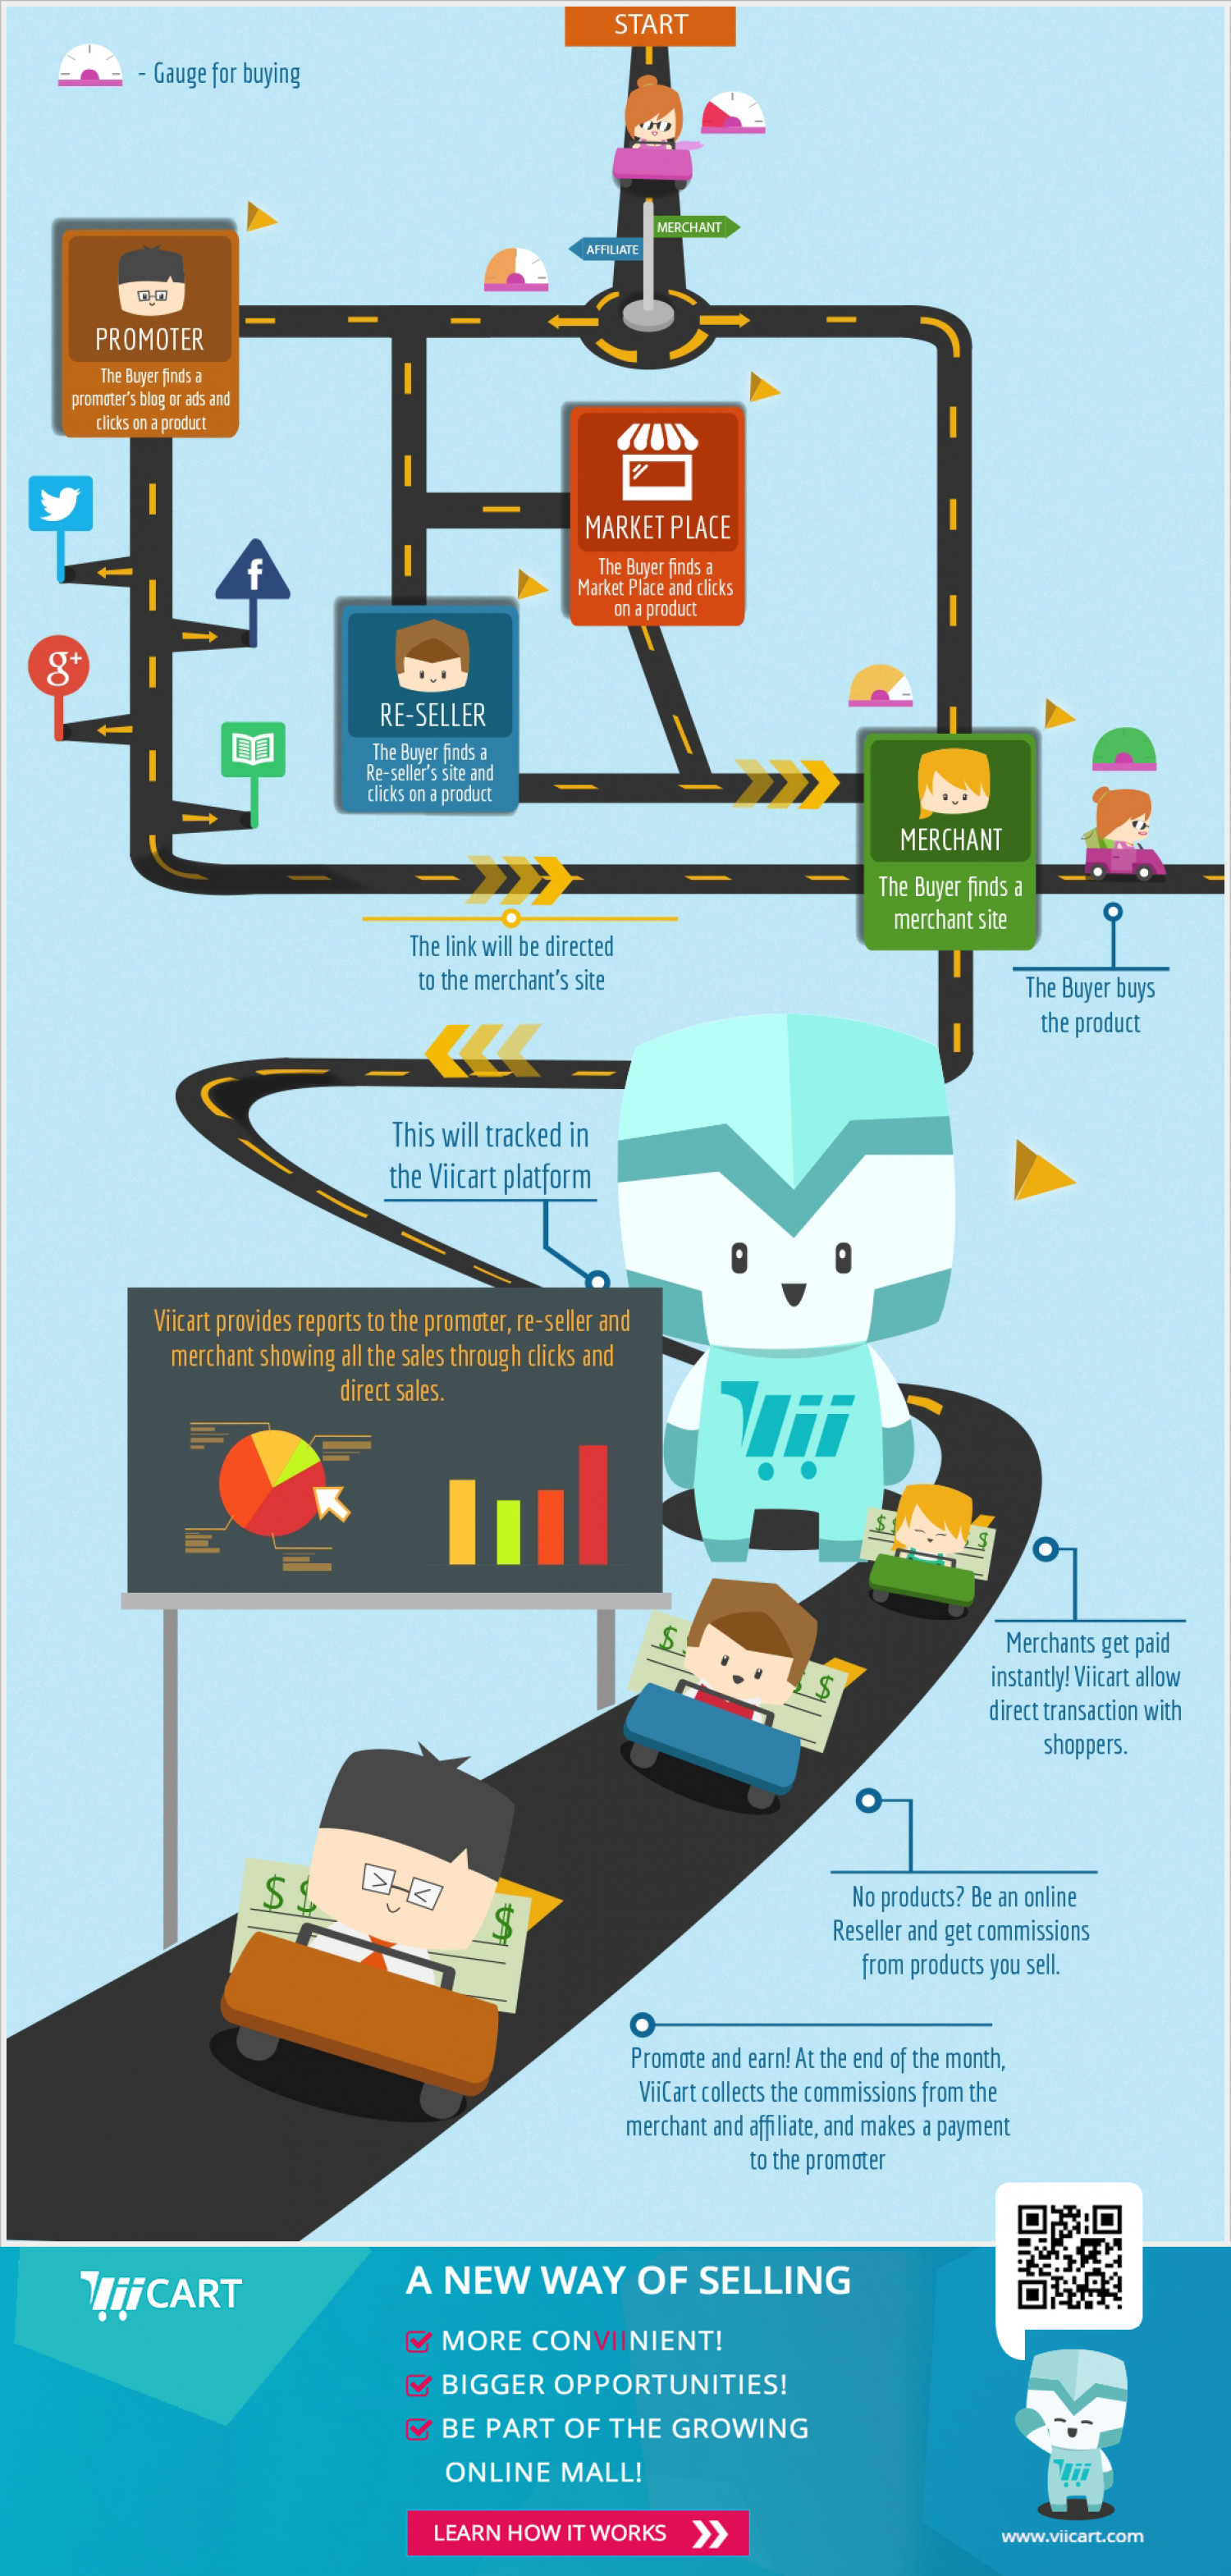 ViiCart: A New Way of Selling! Infographic